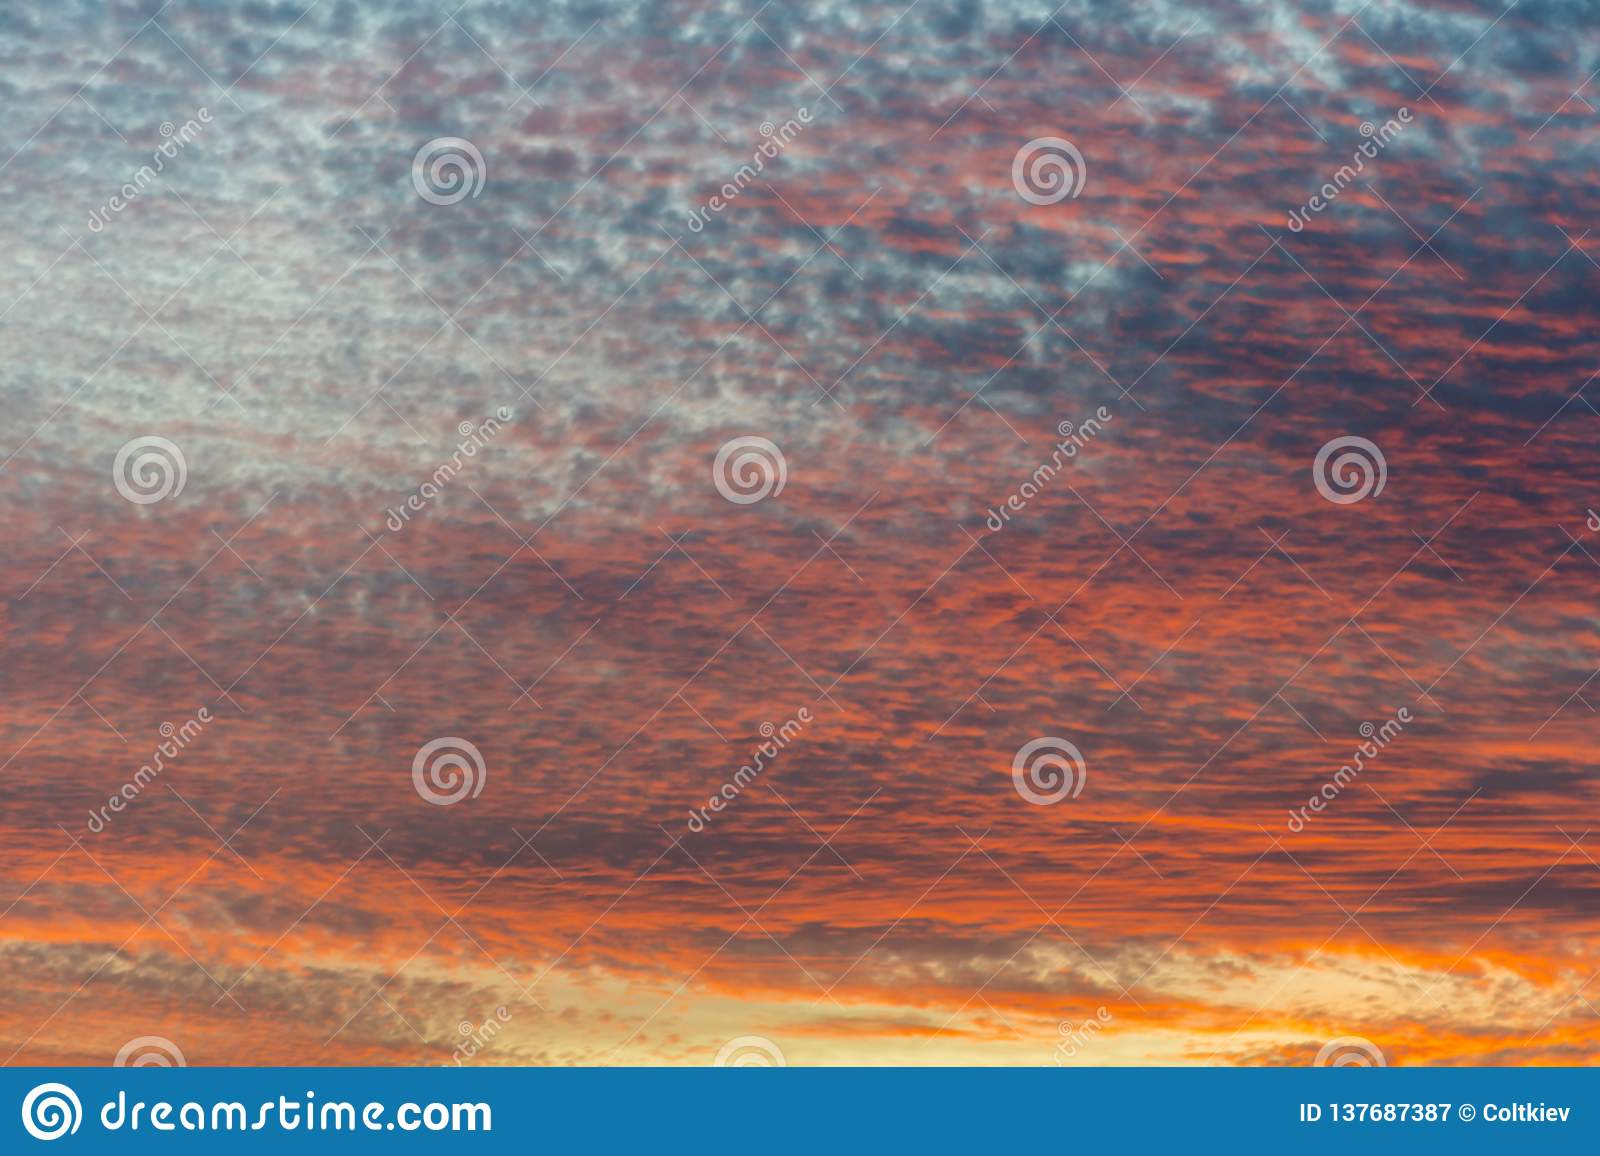 sunset with orange sky. Hot bright vibrant orange and yellow colors sunset sky. sunset with clouds